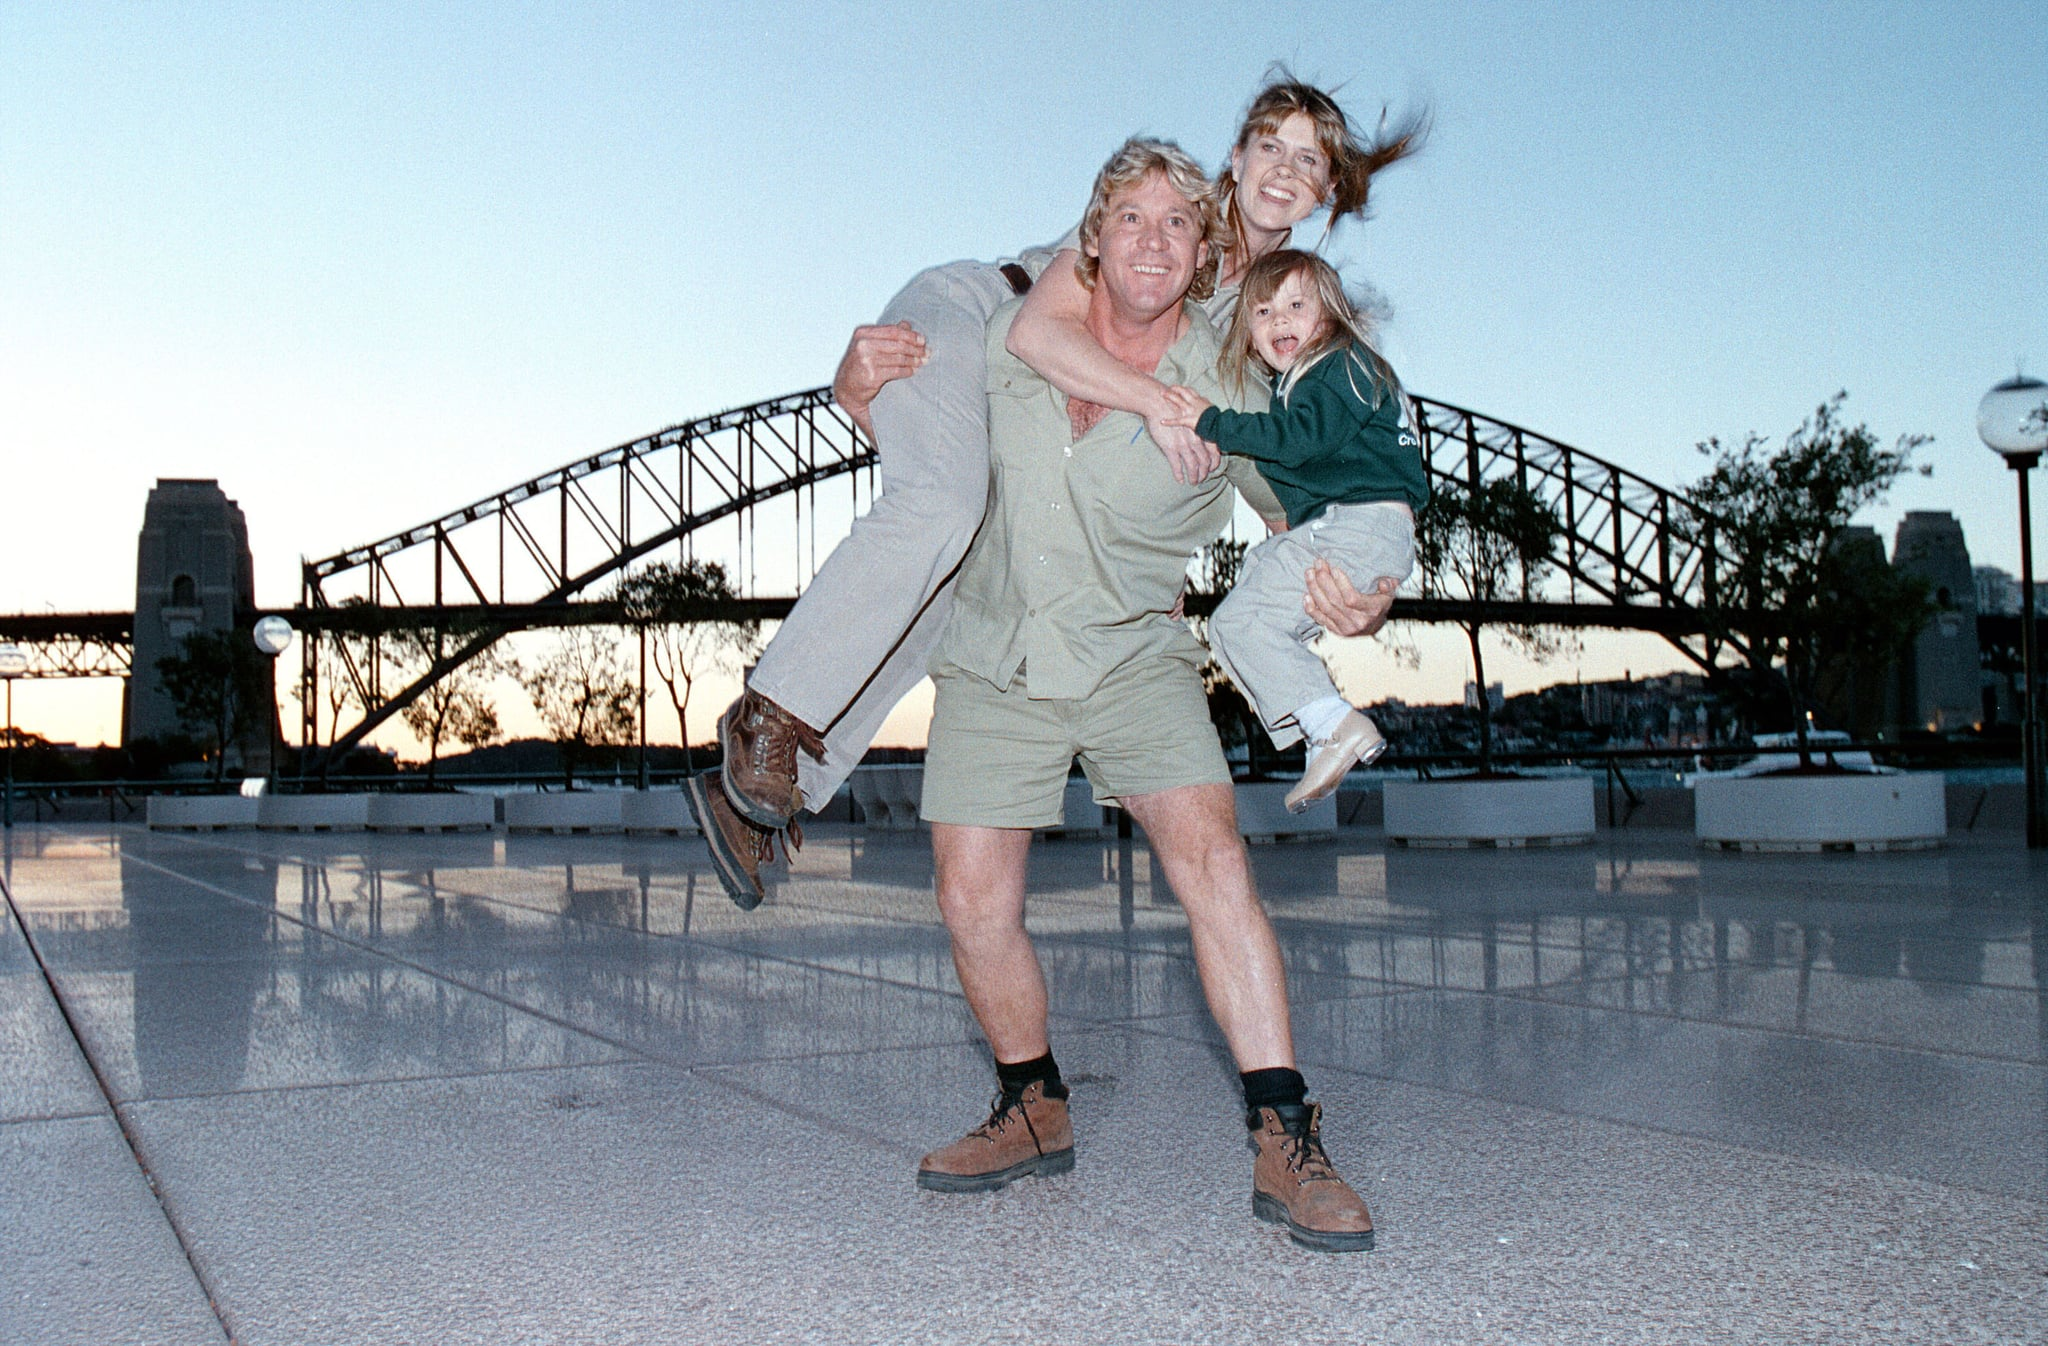 Steve Irwin with his wife Terri and daughter Bindi at the George Street Theatre in Sydney, Australia. (Photo by John Stanton/WireImage)